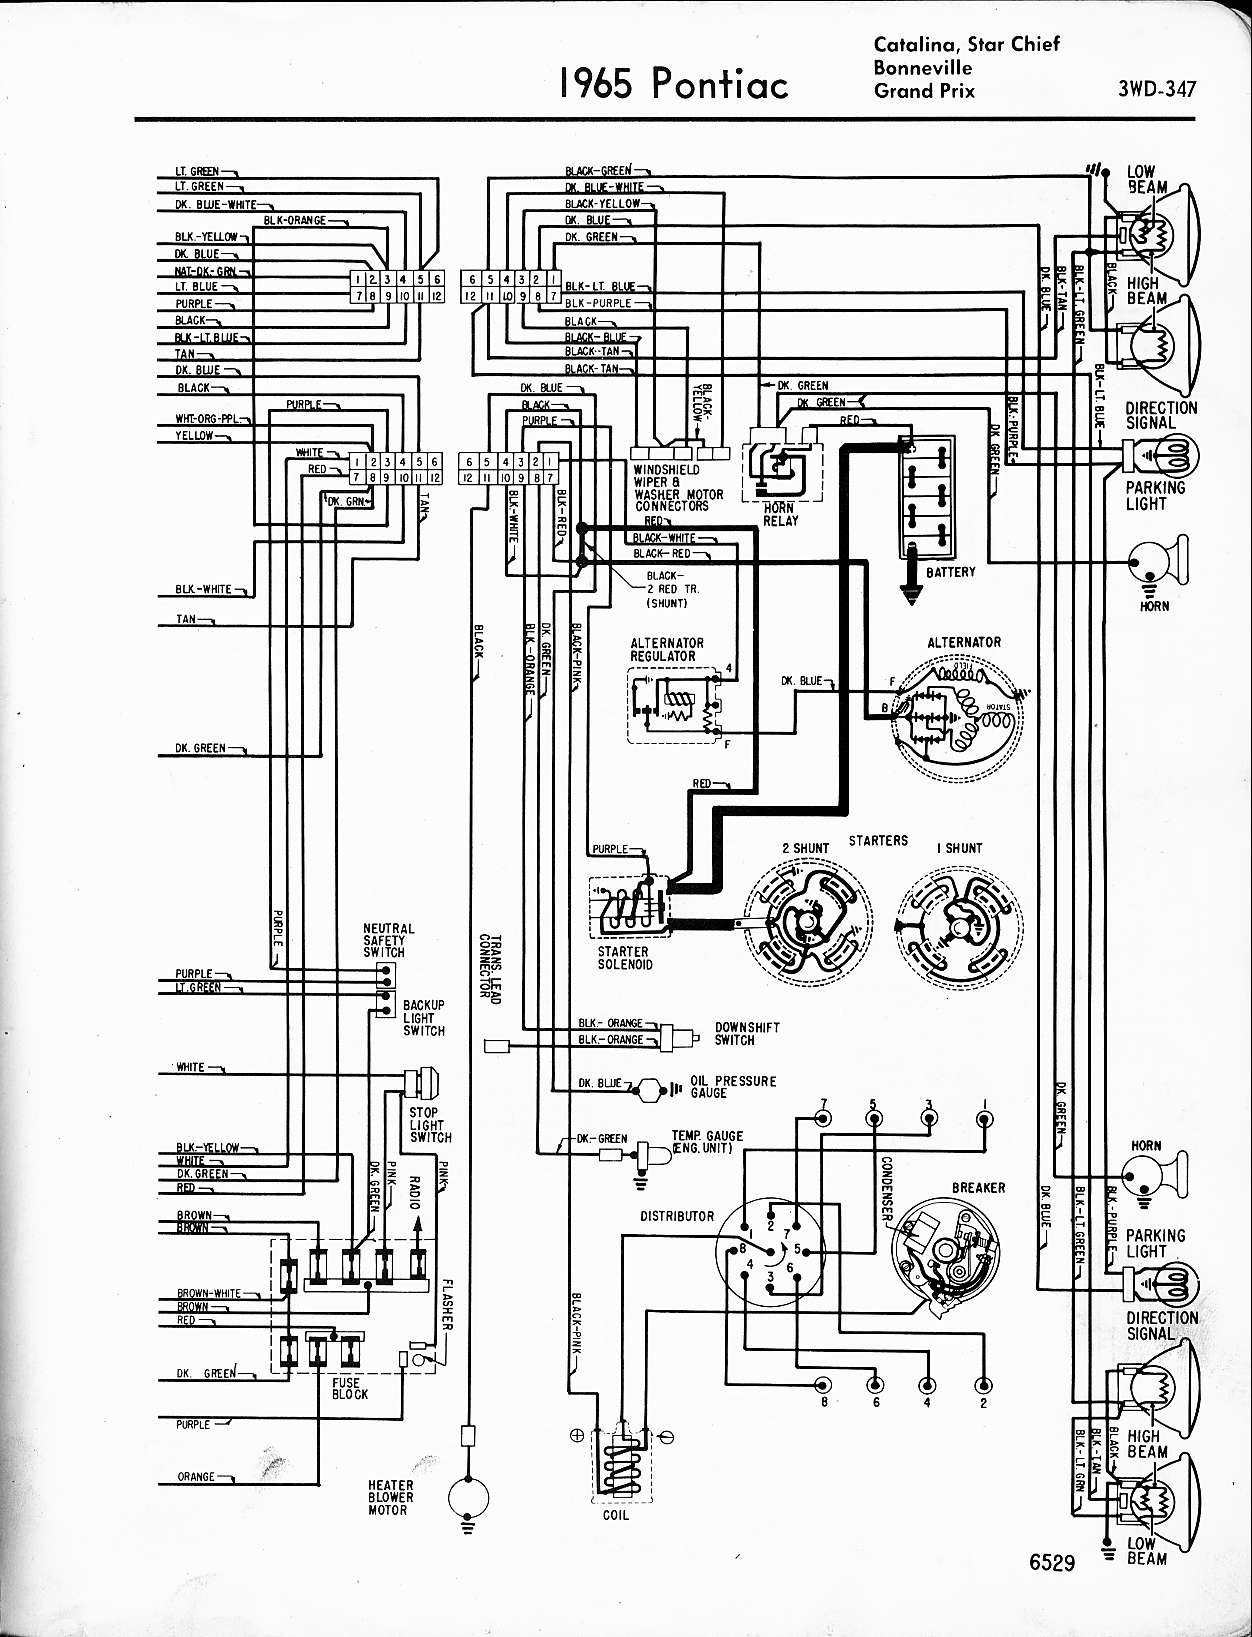 wallace racing wiring diagrams 1965 catalina star chief bonneville grand prix left page